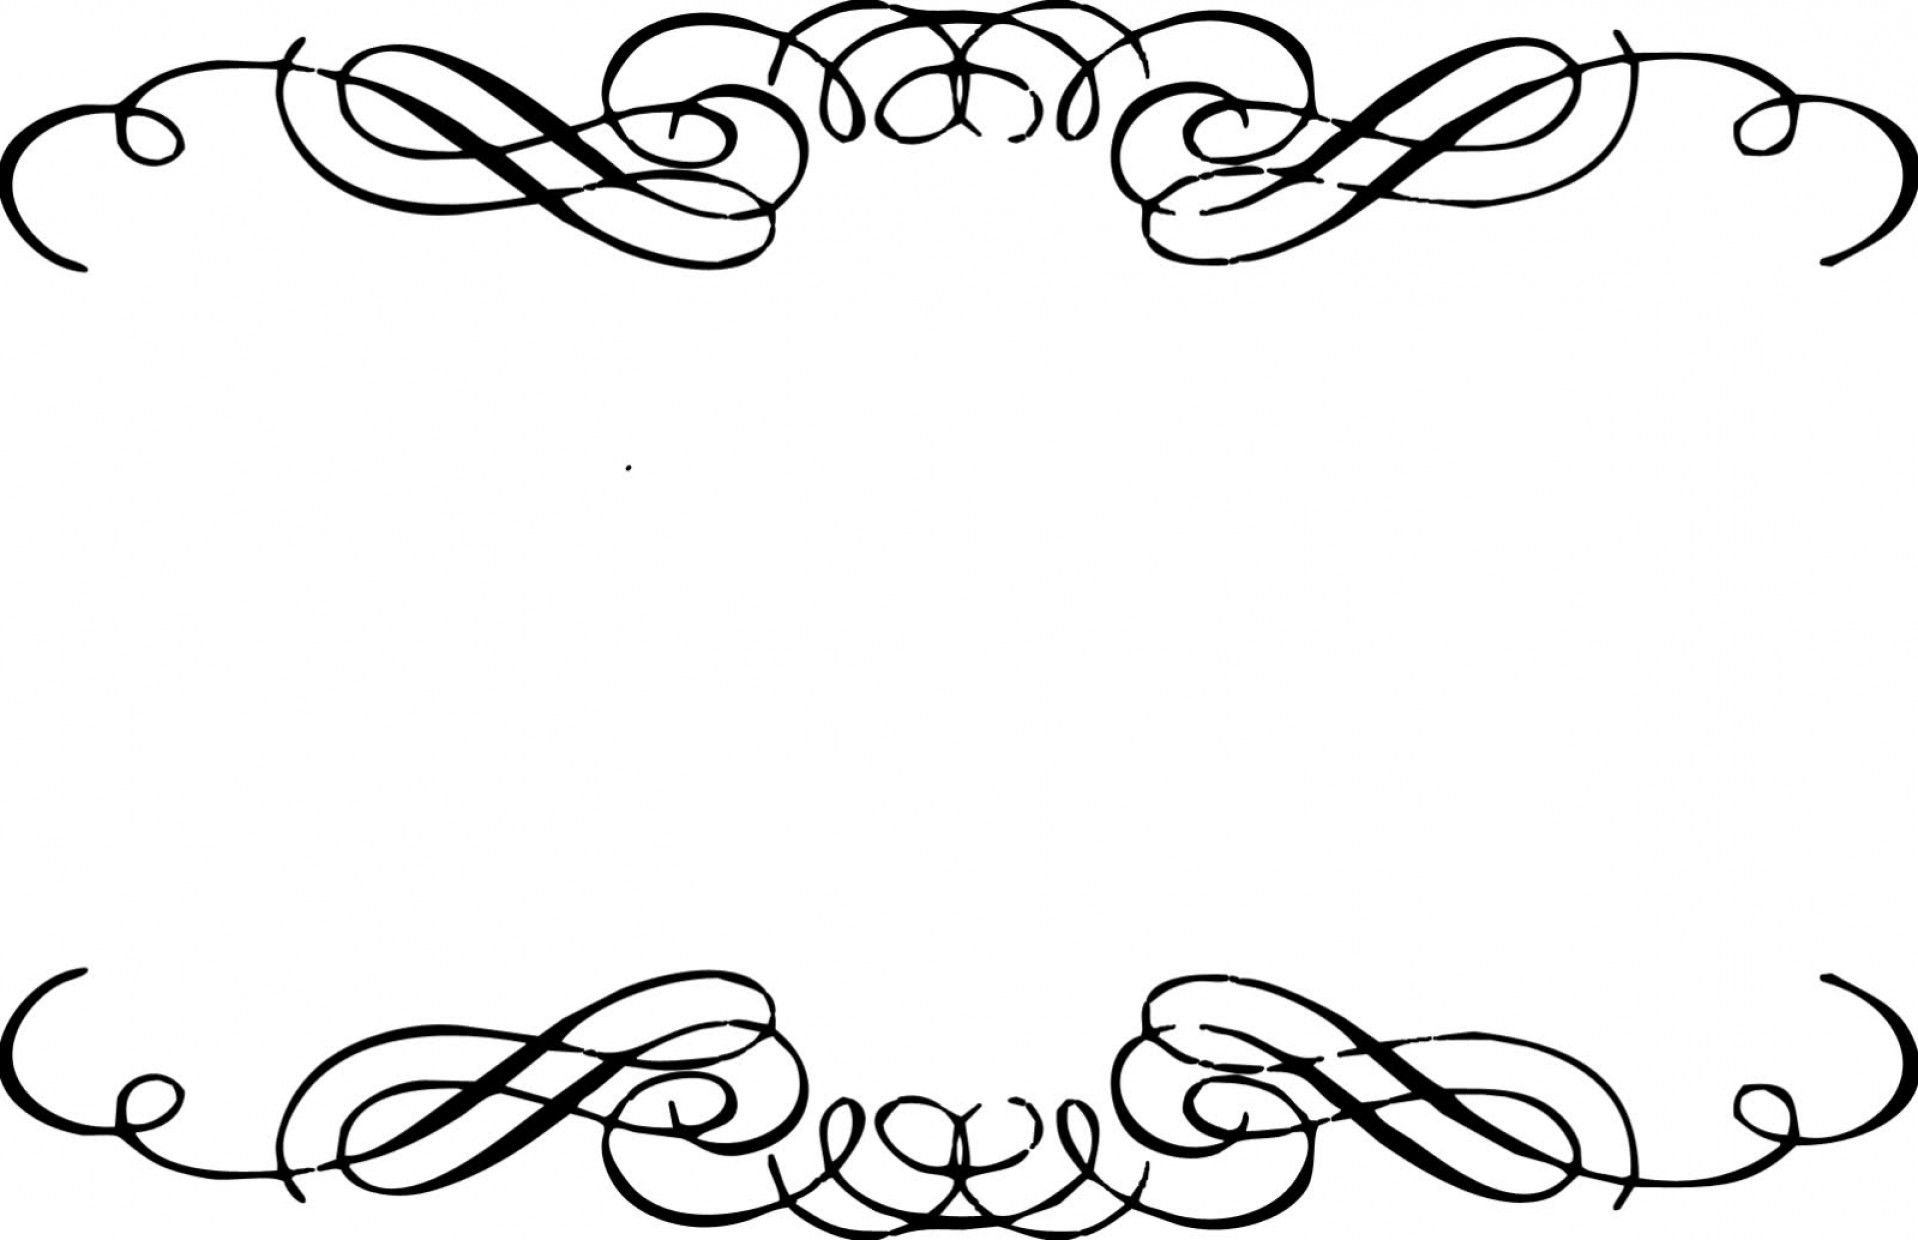 Wedding decoration clipart clipart download Pin by Jazmine Silverstone on Doodles | Clip art, Free ... clipart download